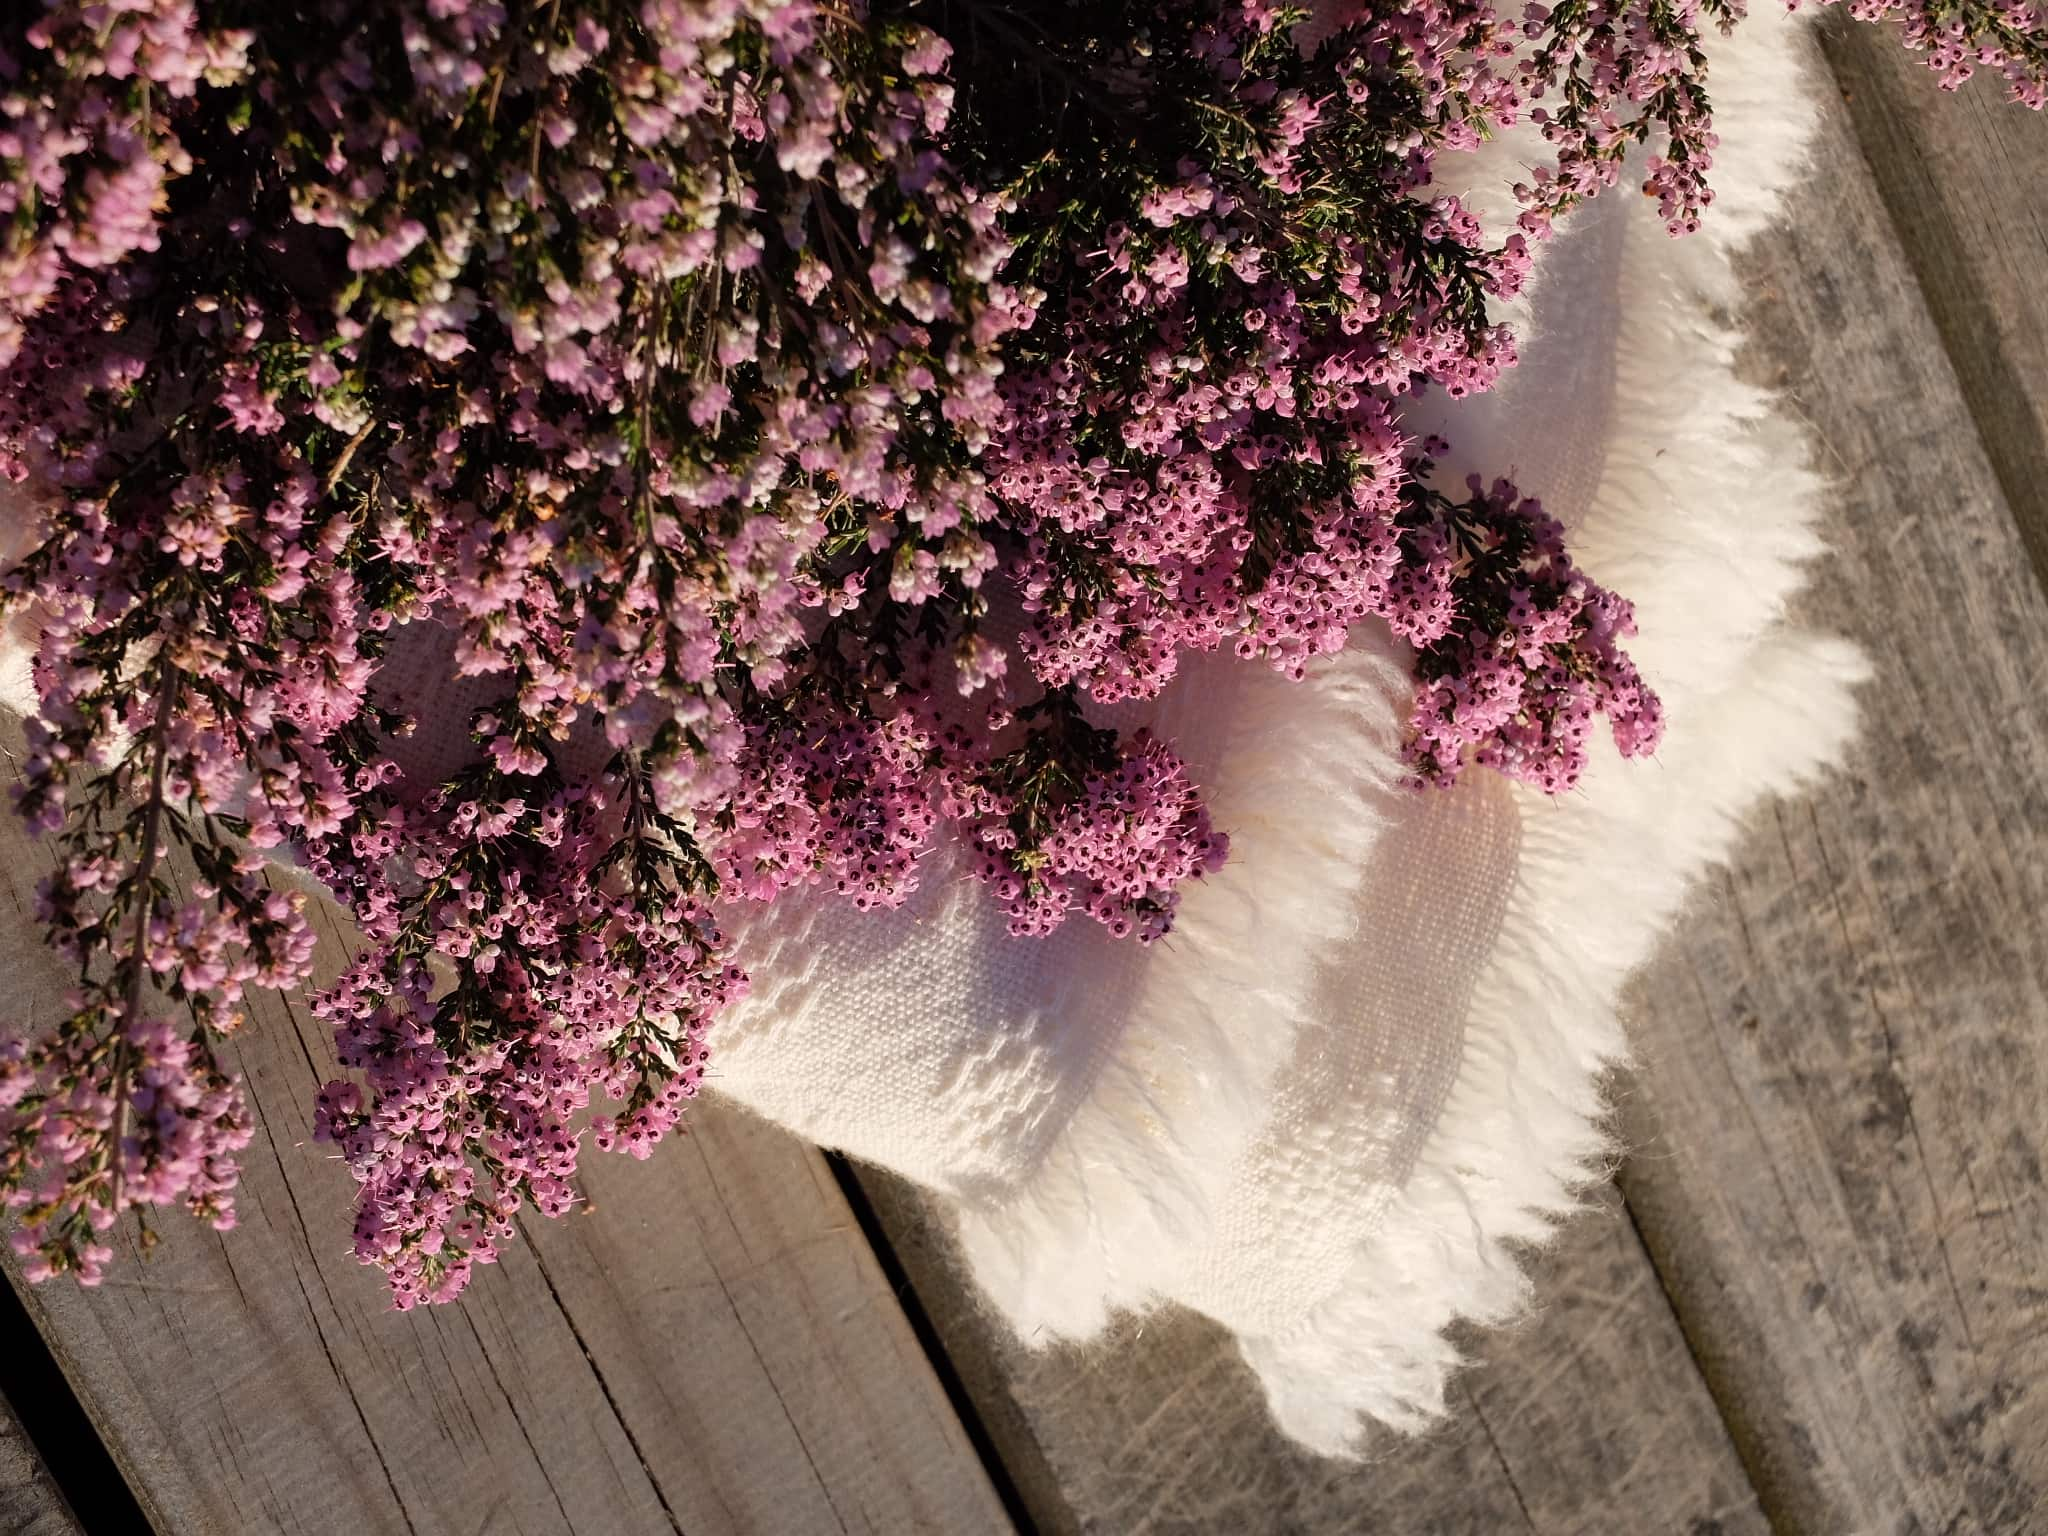 Heather or 'Erica' was used to dye the Erica Kenza scarf colourway